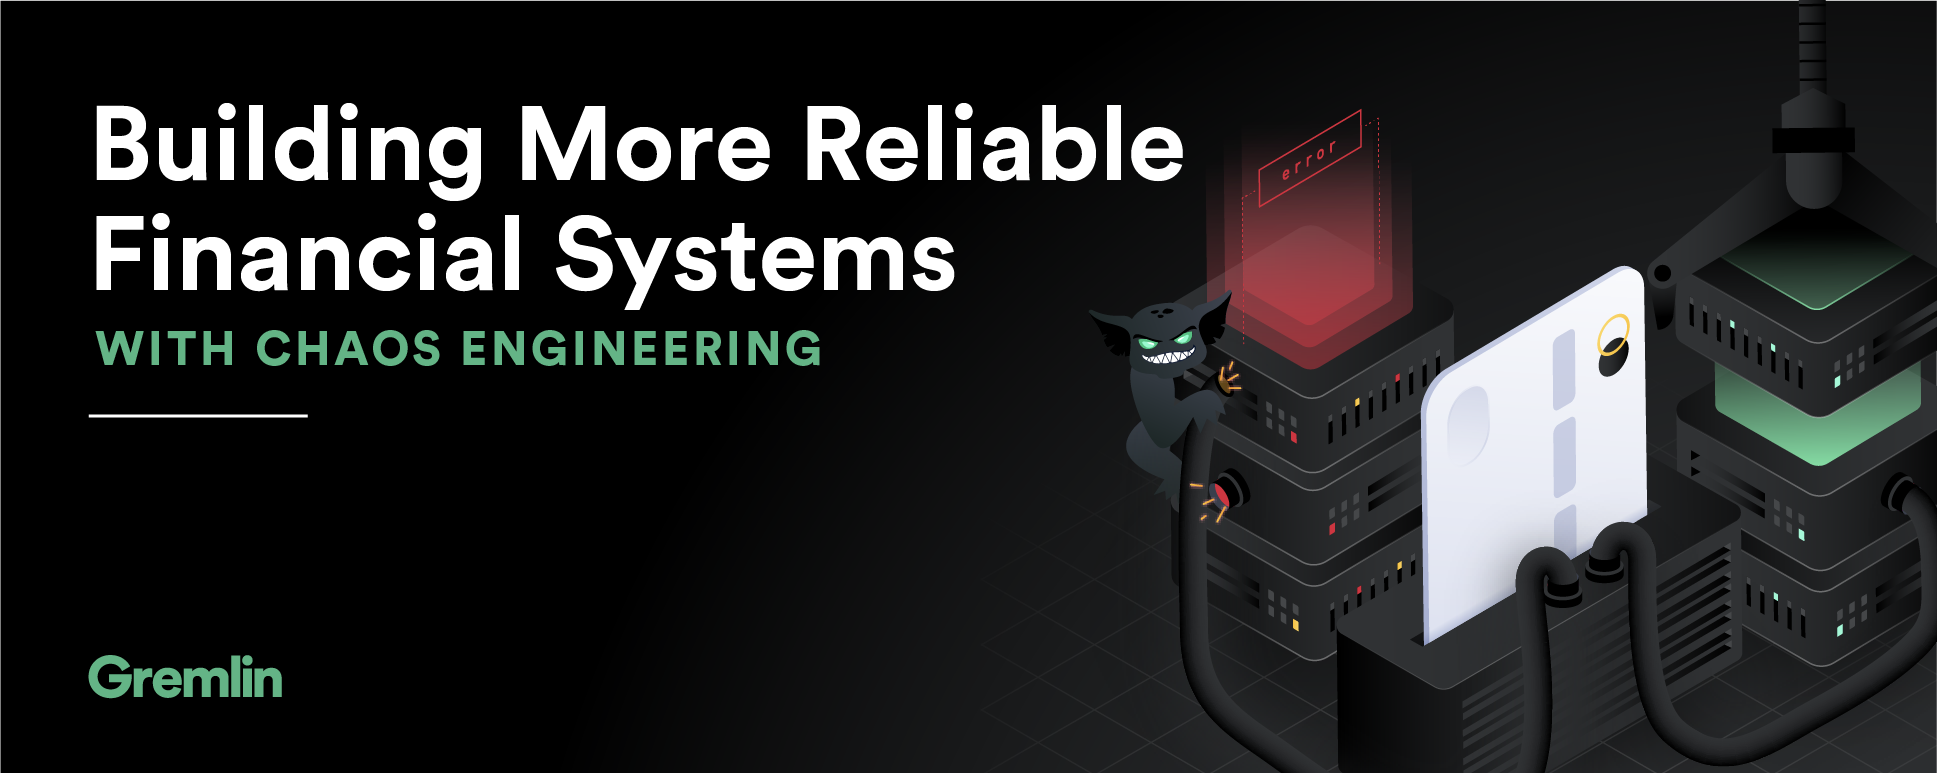 Building more reliable financial systems with Chaos Engineering